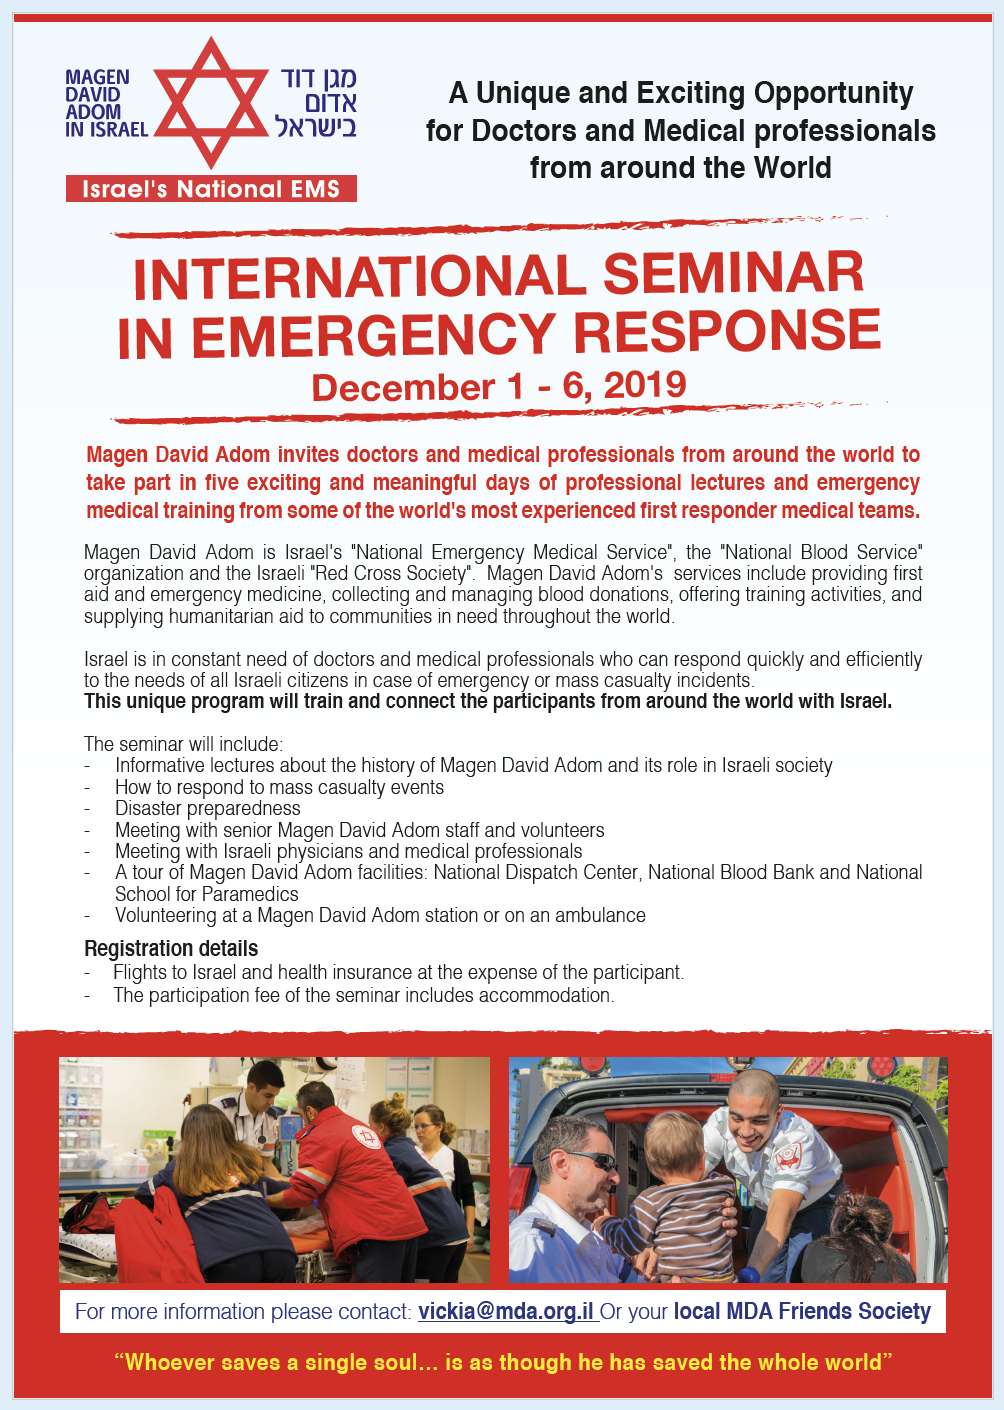 INTERNATIONAL SEMINAR IN EMERGENCY RESPONSE 2019